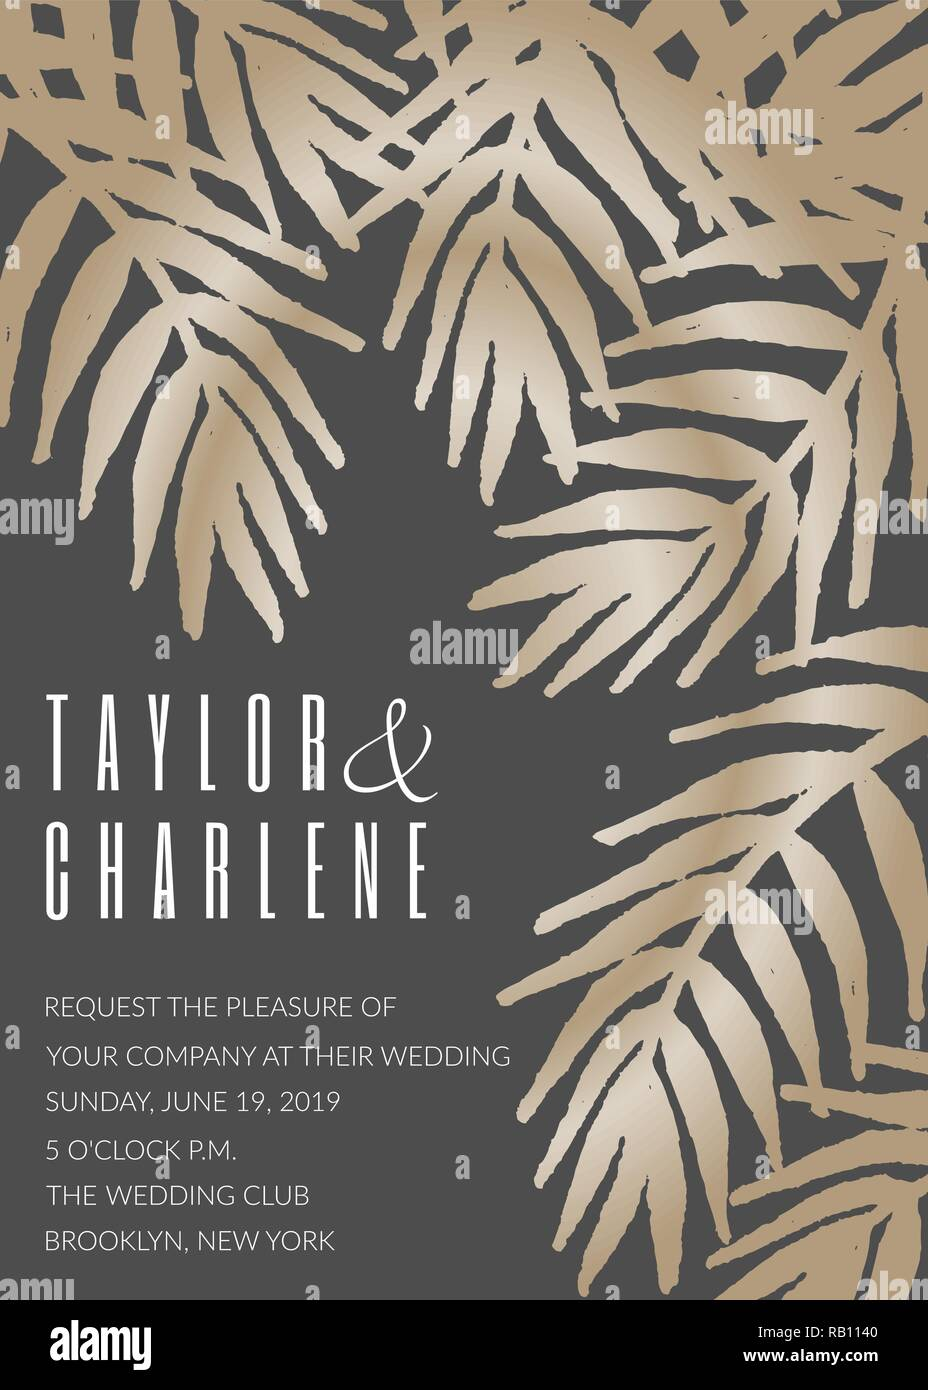 Wedding Invitation Template With Golden Tropical Leaves On Dark Gray Background And Sample Text Layout Vector Greeting Card Bridal Shower Brochure Stock Vector Image Art Alamy Wedding invitation (bonus 5 extra!), rsvp, information card, save the date, program, menu and thank you, table number and place card! https www alamy com wedding invitation template with golden tropical leaves on dark gray background and sample text layout vector greeting card bridal shower brochure image230518848 html